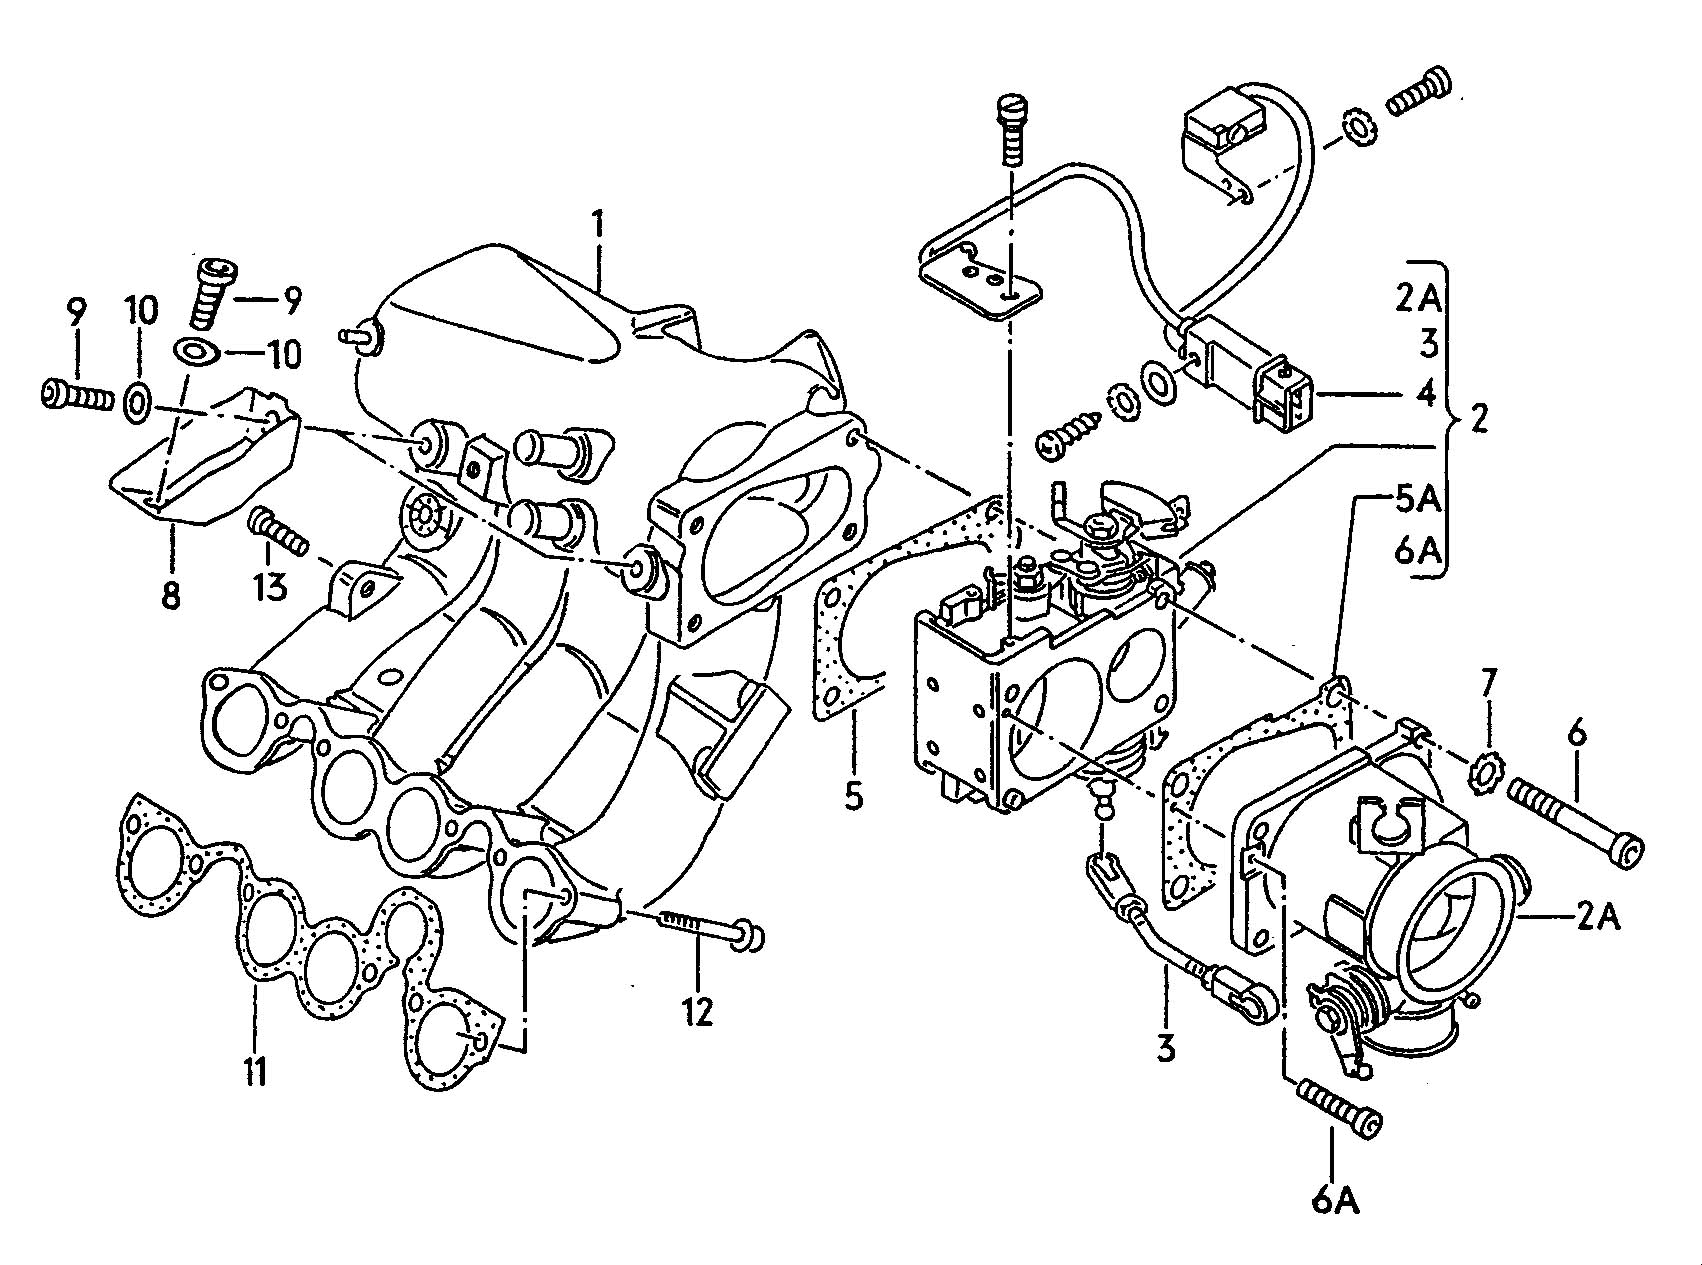 Vw Rail Buggy Wiring Harness Diagrams Further Engine Diagram And Ignition 1966 Bug Electronic